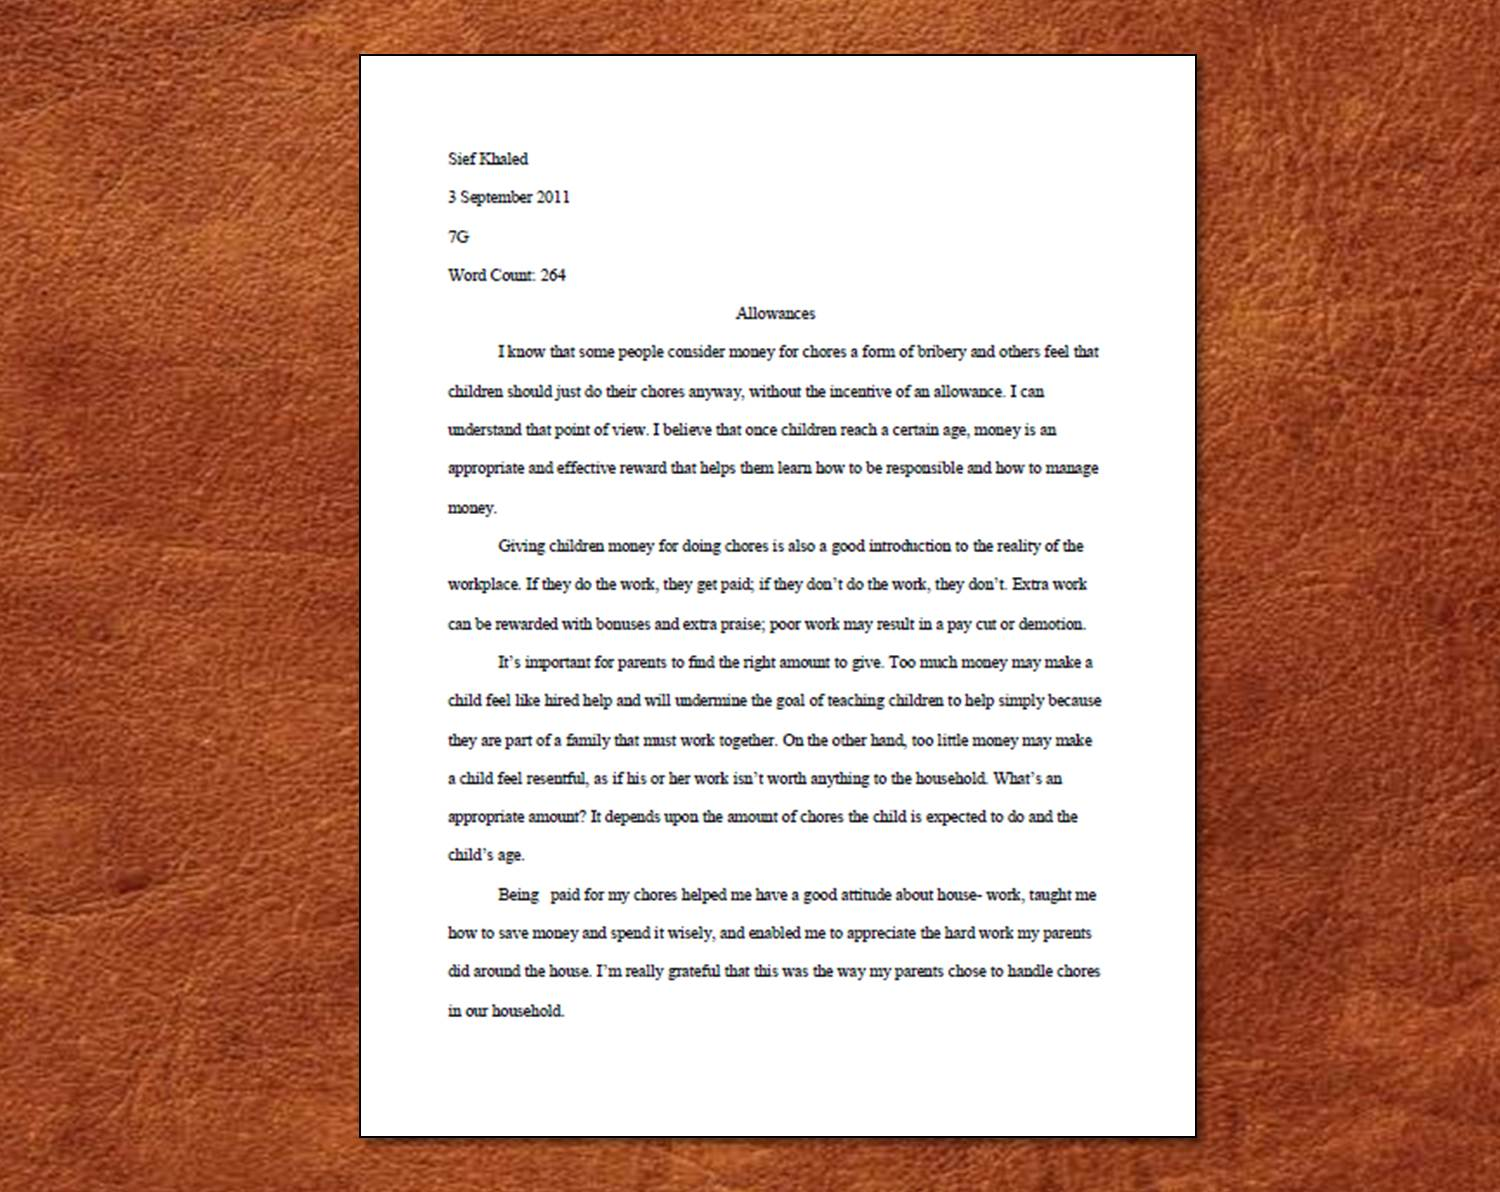 Mla format for writing an essay